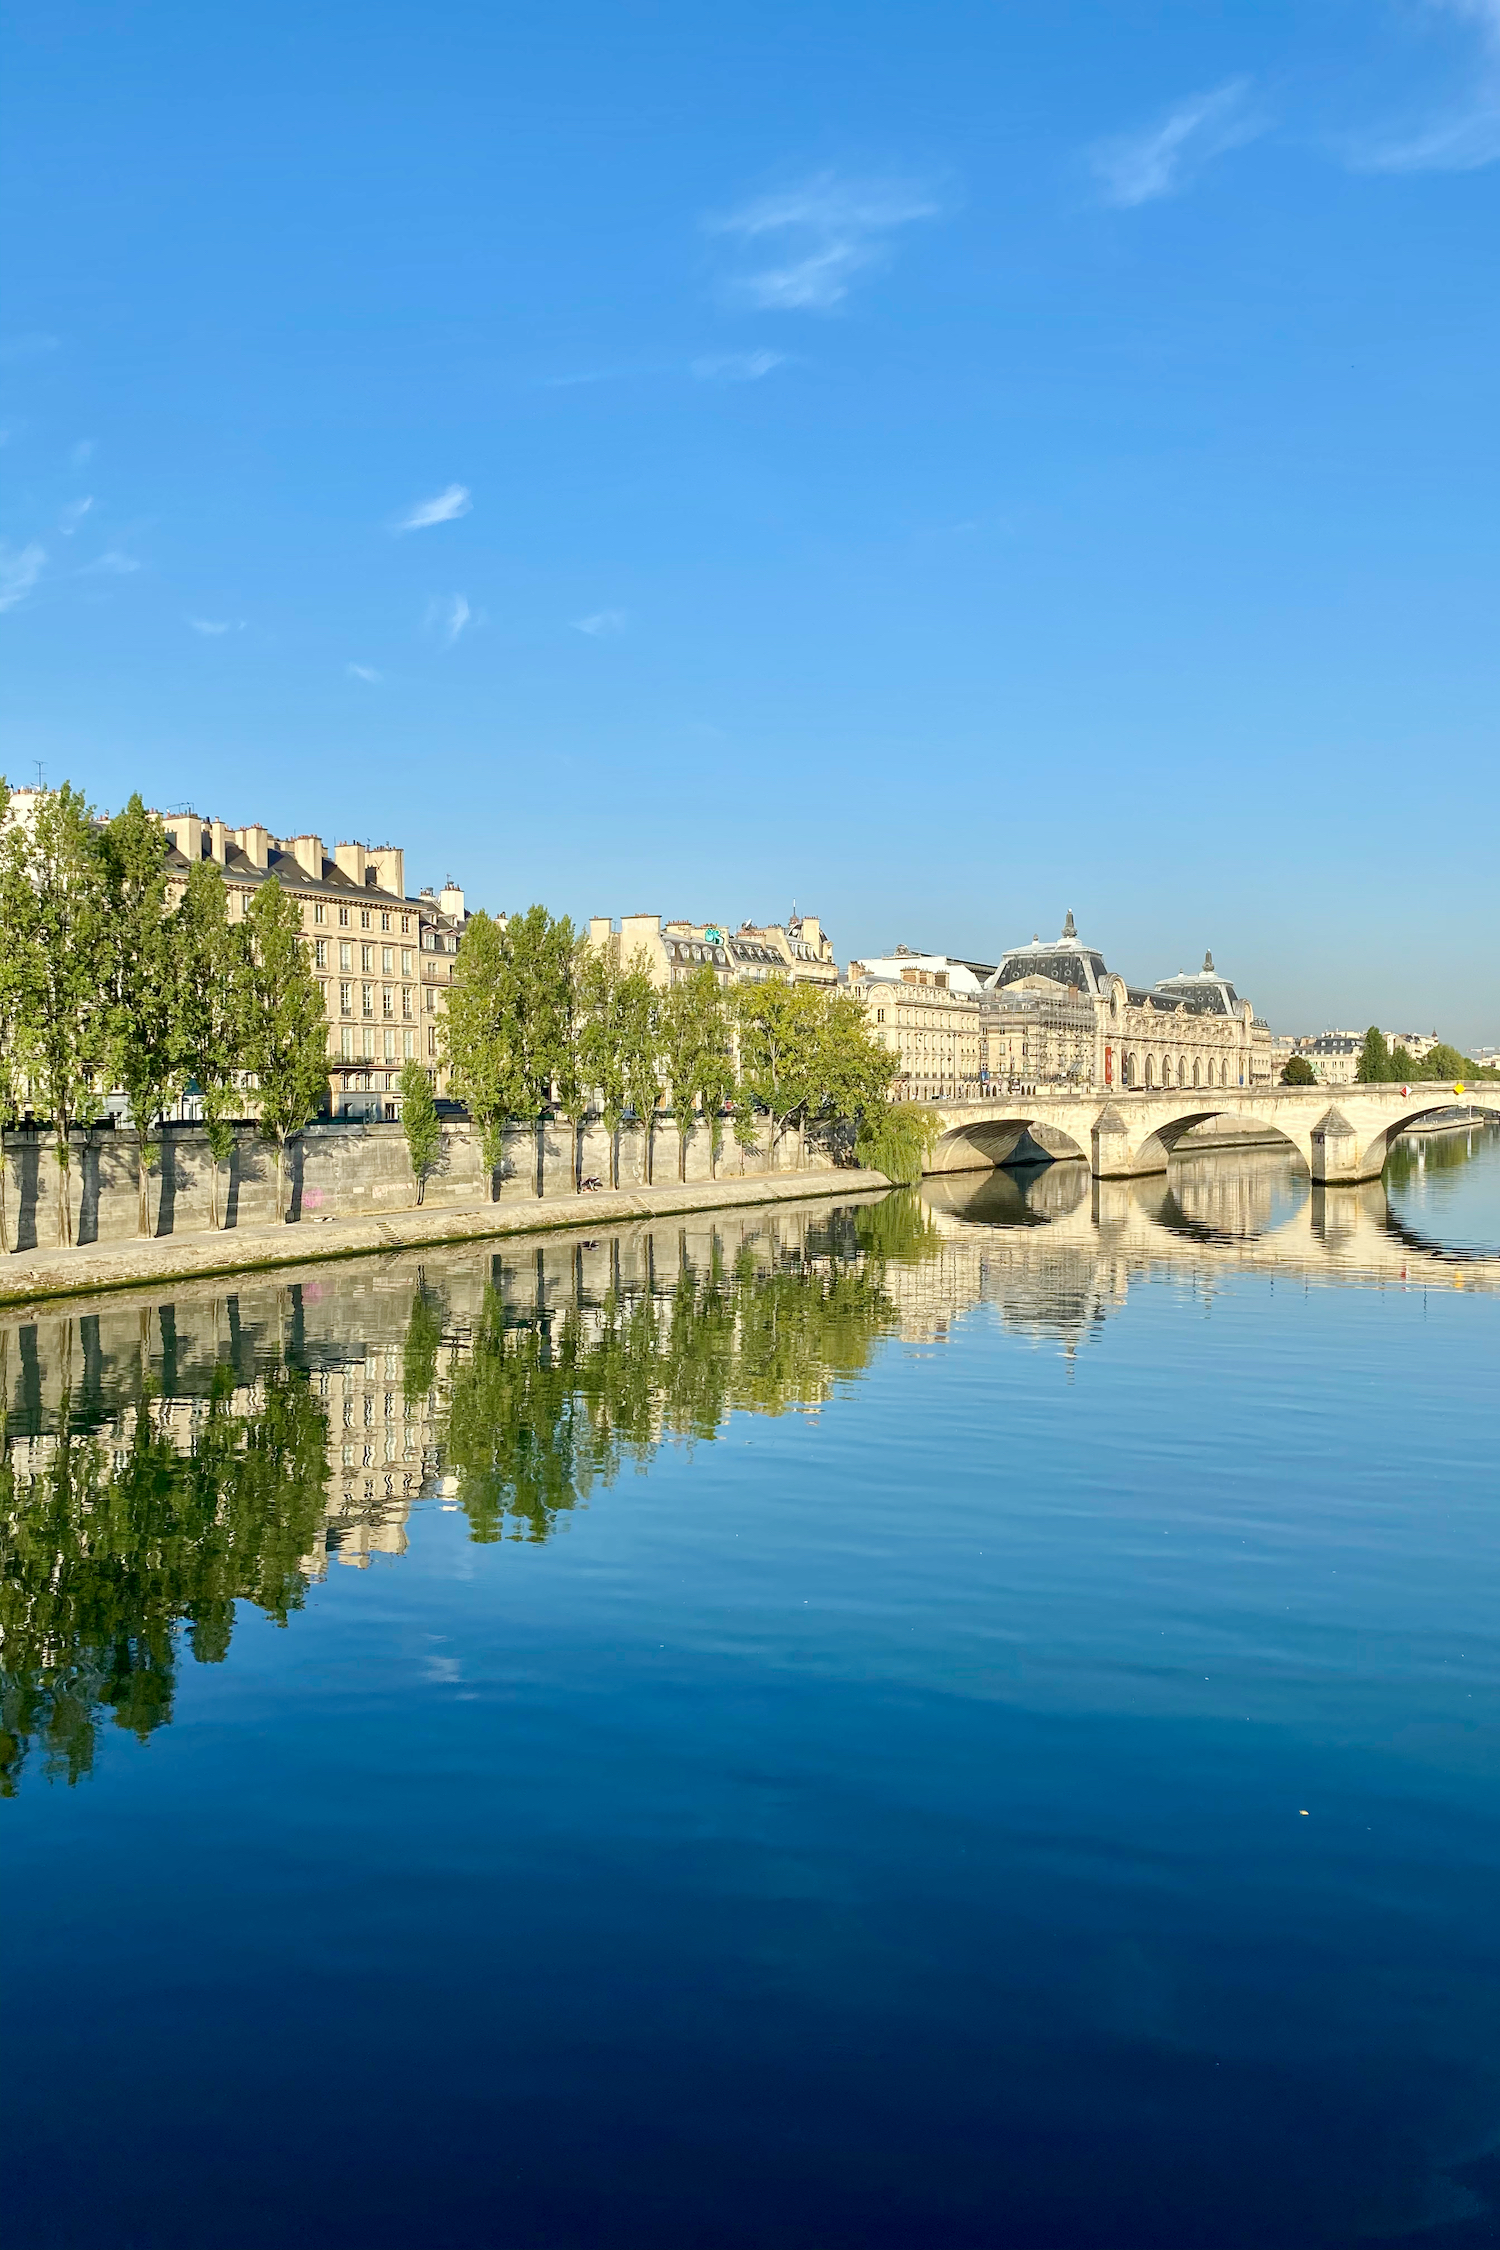 August morning walks along the Seine